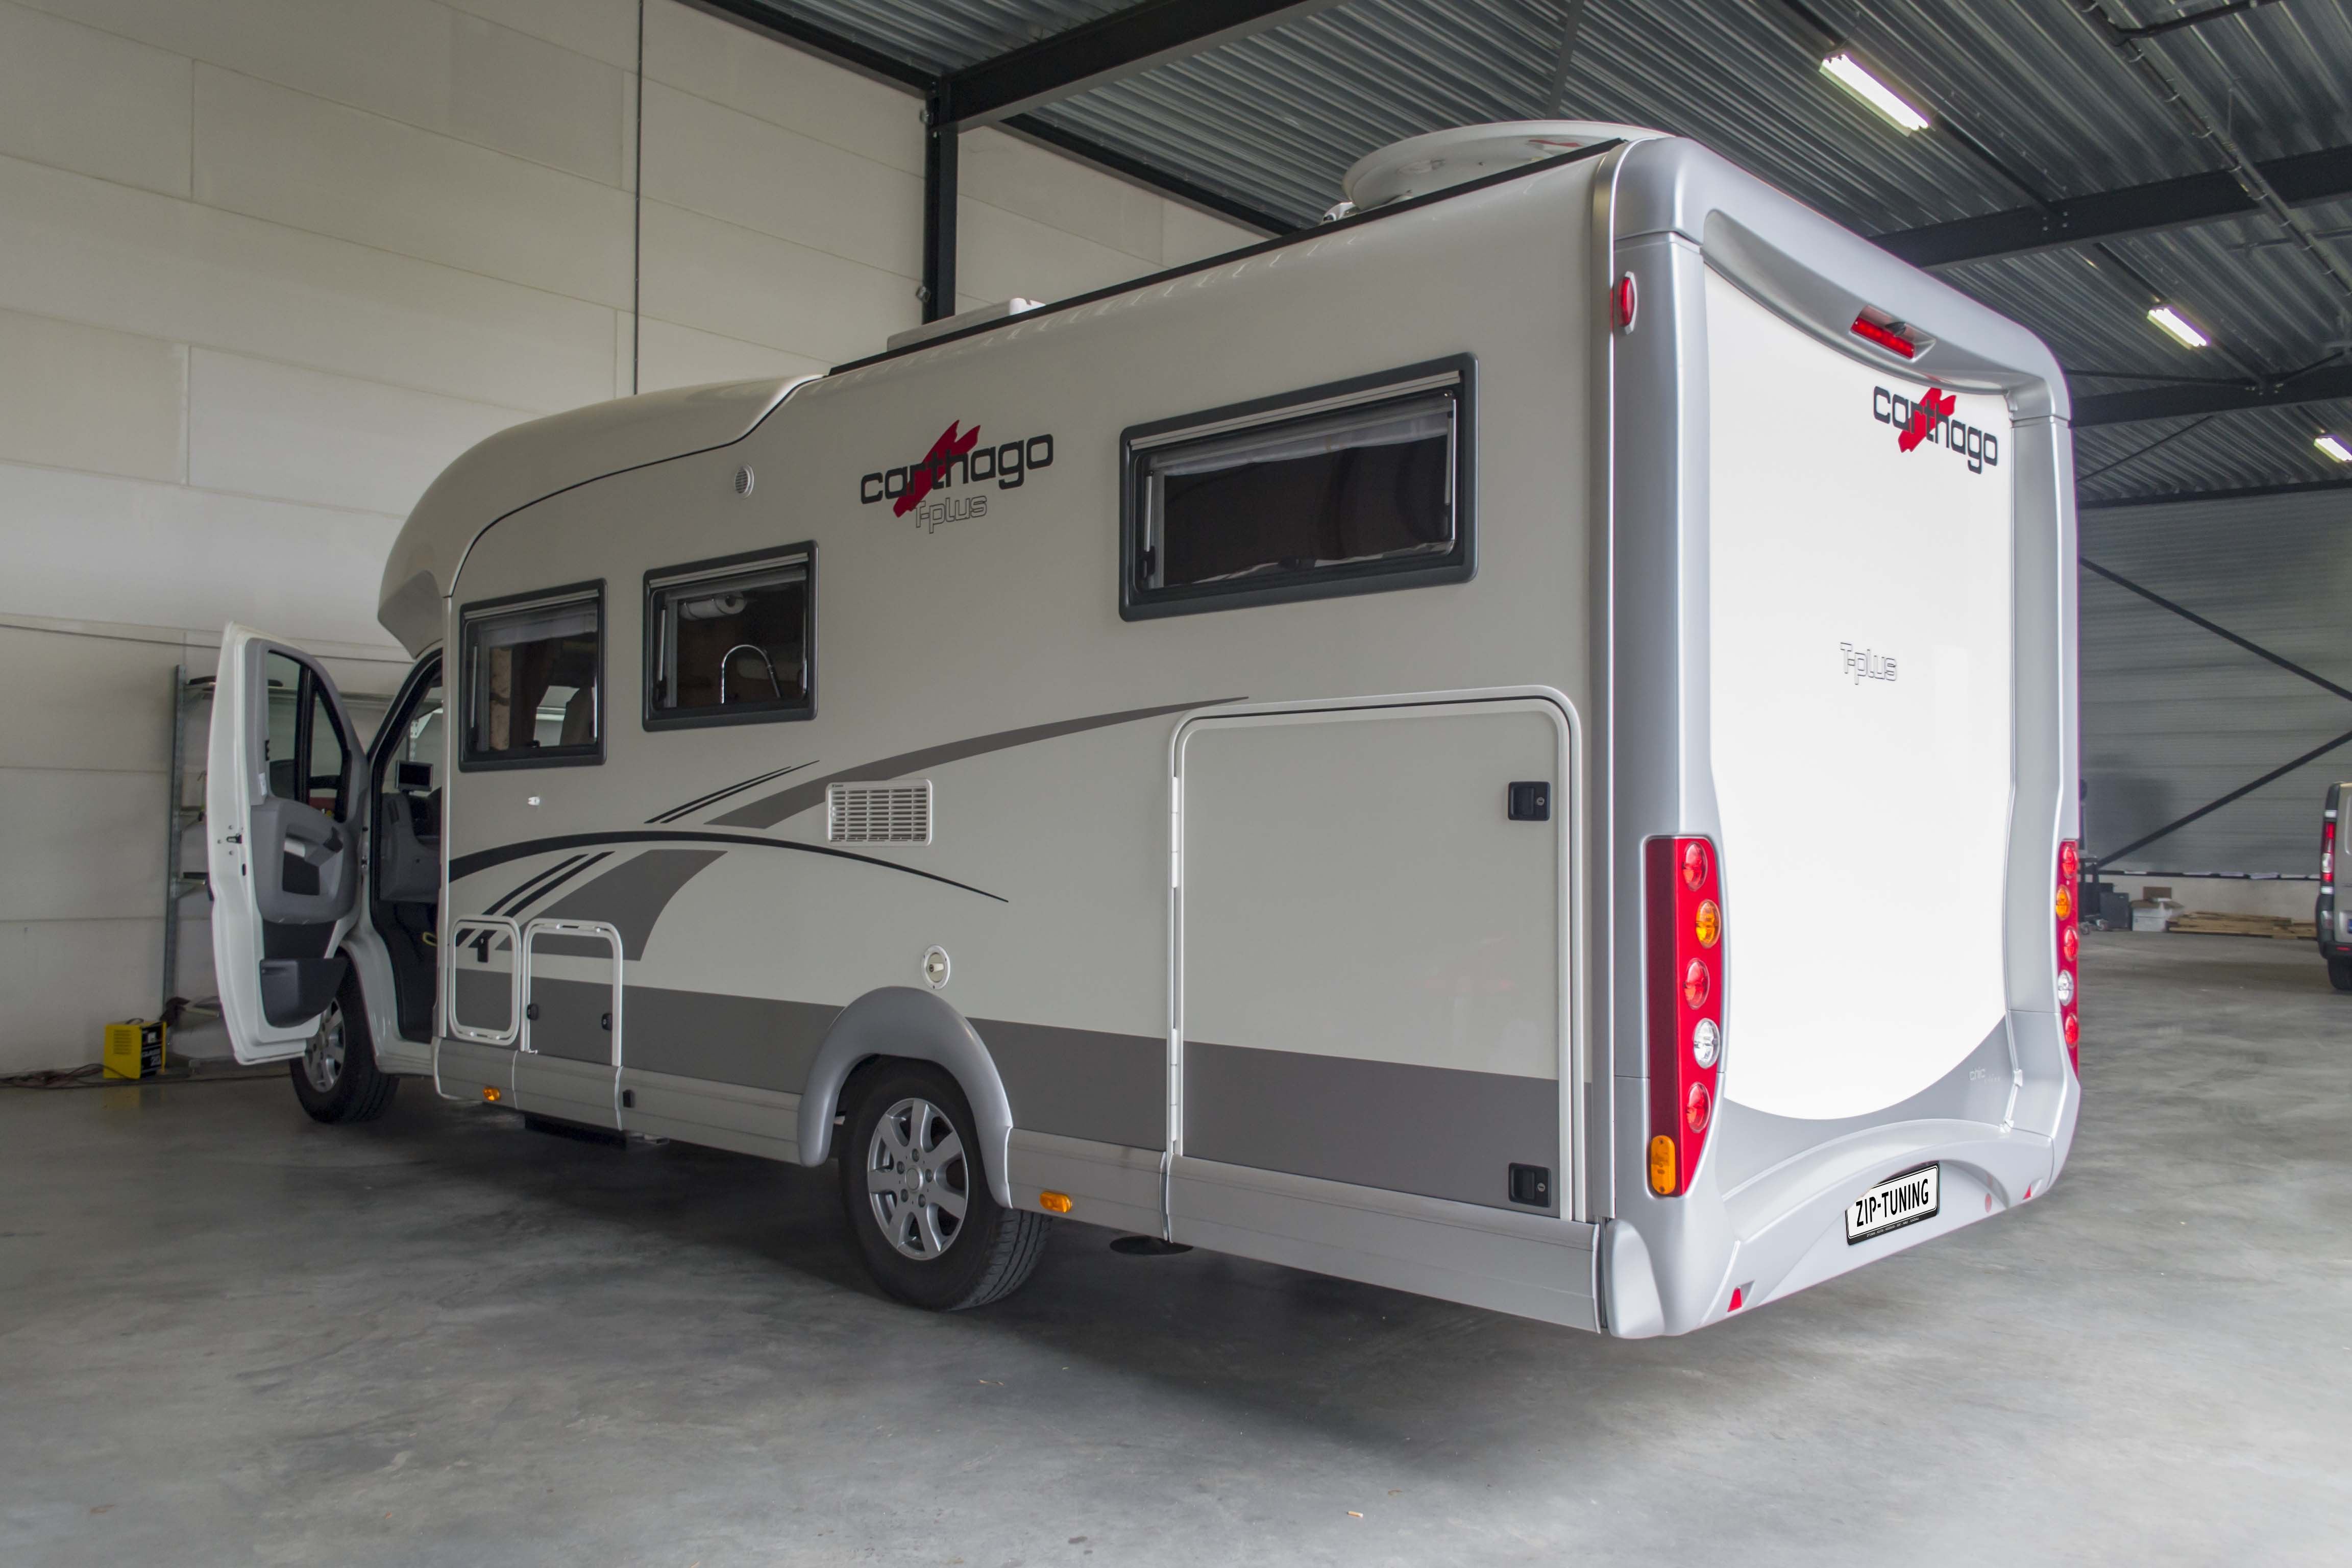 reprogrammation fiat ducato 2 3 multijet 130 cv 2016. Black Bedroom Furniture Sets. Home Design Ideas